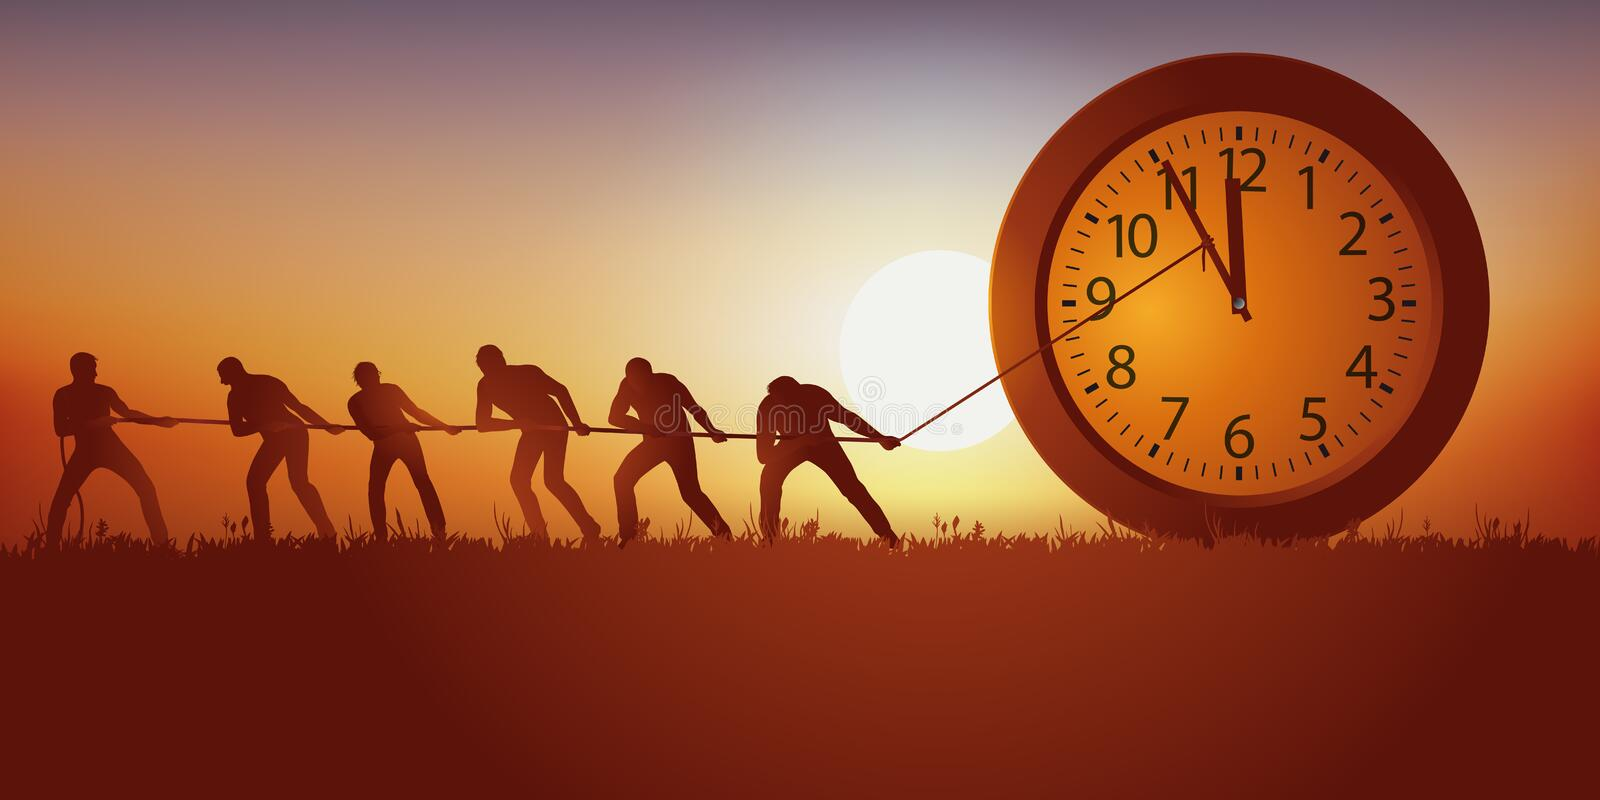 Concept of retaining the time that passes with men trying to block the hands of a clock with a rope. royalty free illustration